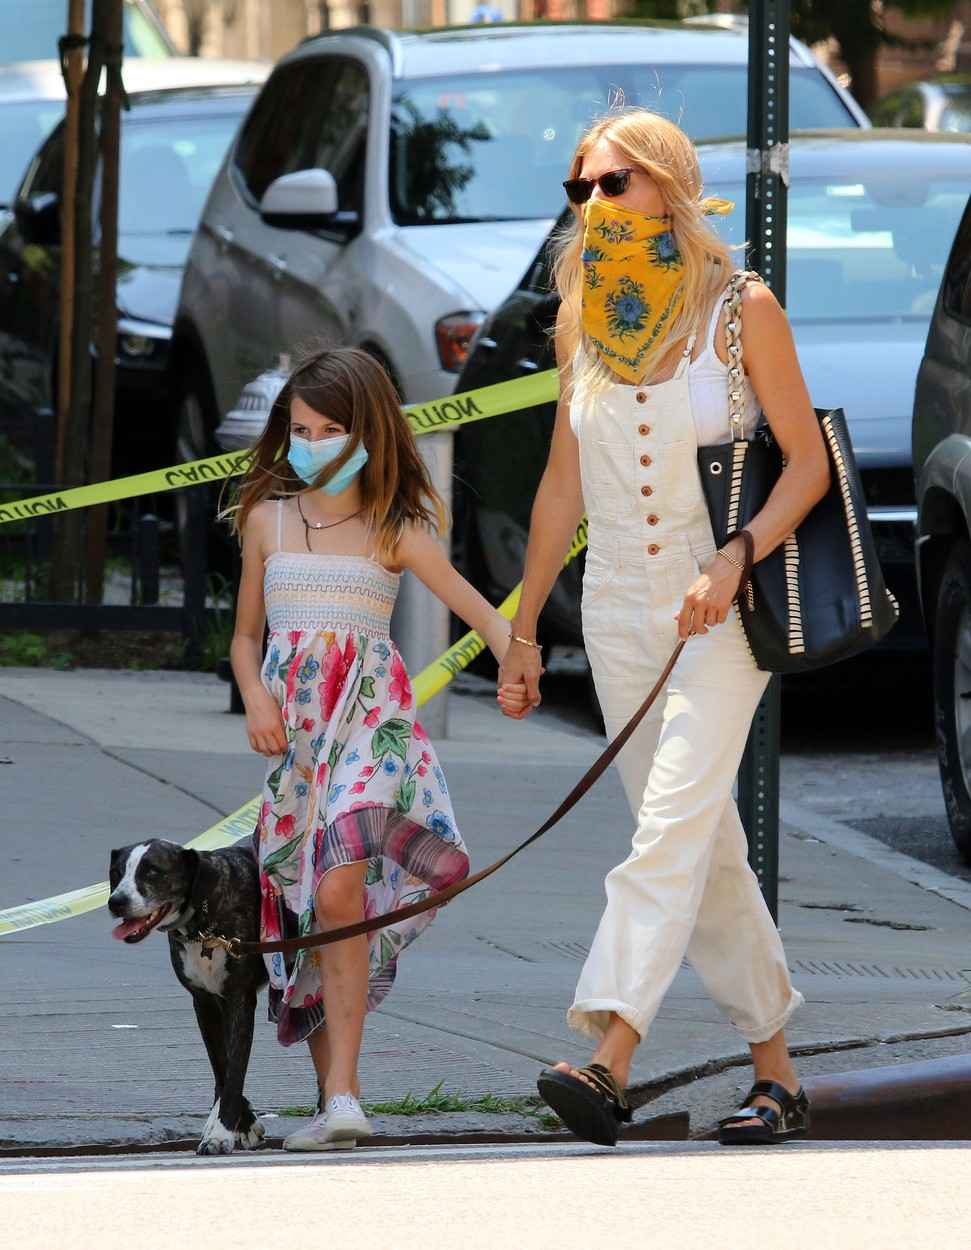 Sienna Miller and her daughter Marlowe walk their dogs while braving the NYC heatwave in Manhattan's West Village area.  At one point one of her dogs started sniffing Sienna's foot. **SPECIAL INSTRUCTIONS*** Please pixelate children's faces before publication.***. 27 Jul 2020,Image: 547608255, License: Rights-managed, Restrictions: World Rights, Model Release: no, Credit line: LRNYC / MEGA / The Mega Agency / Profimedia